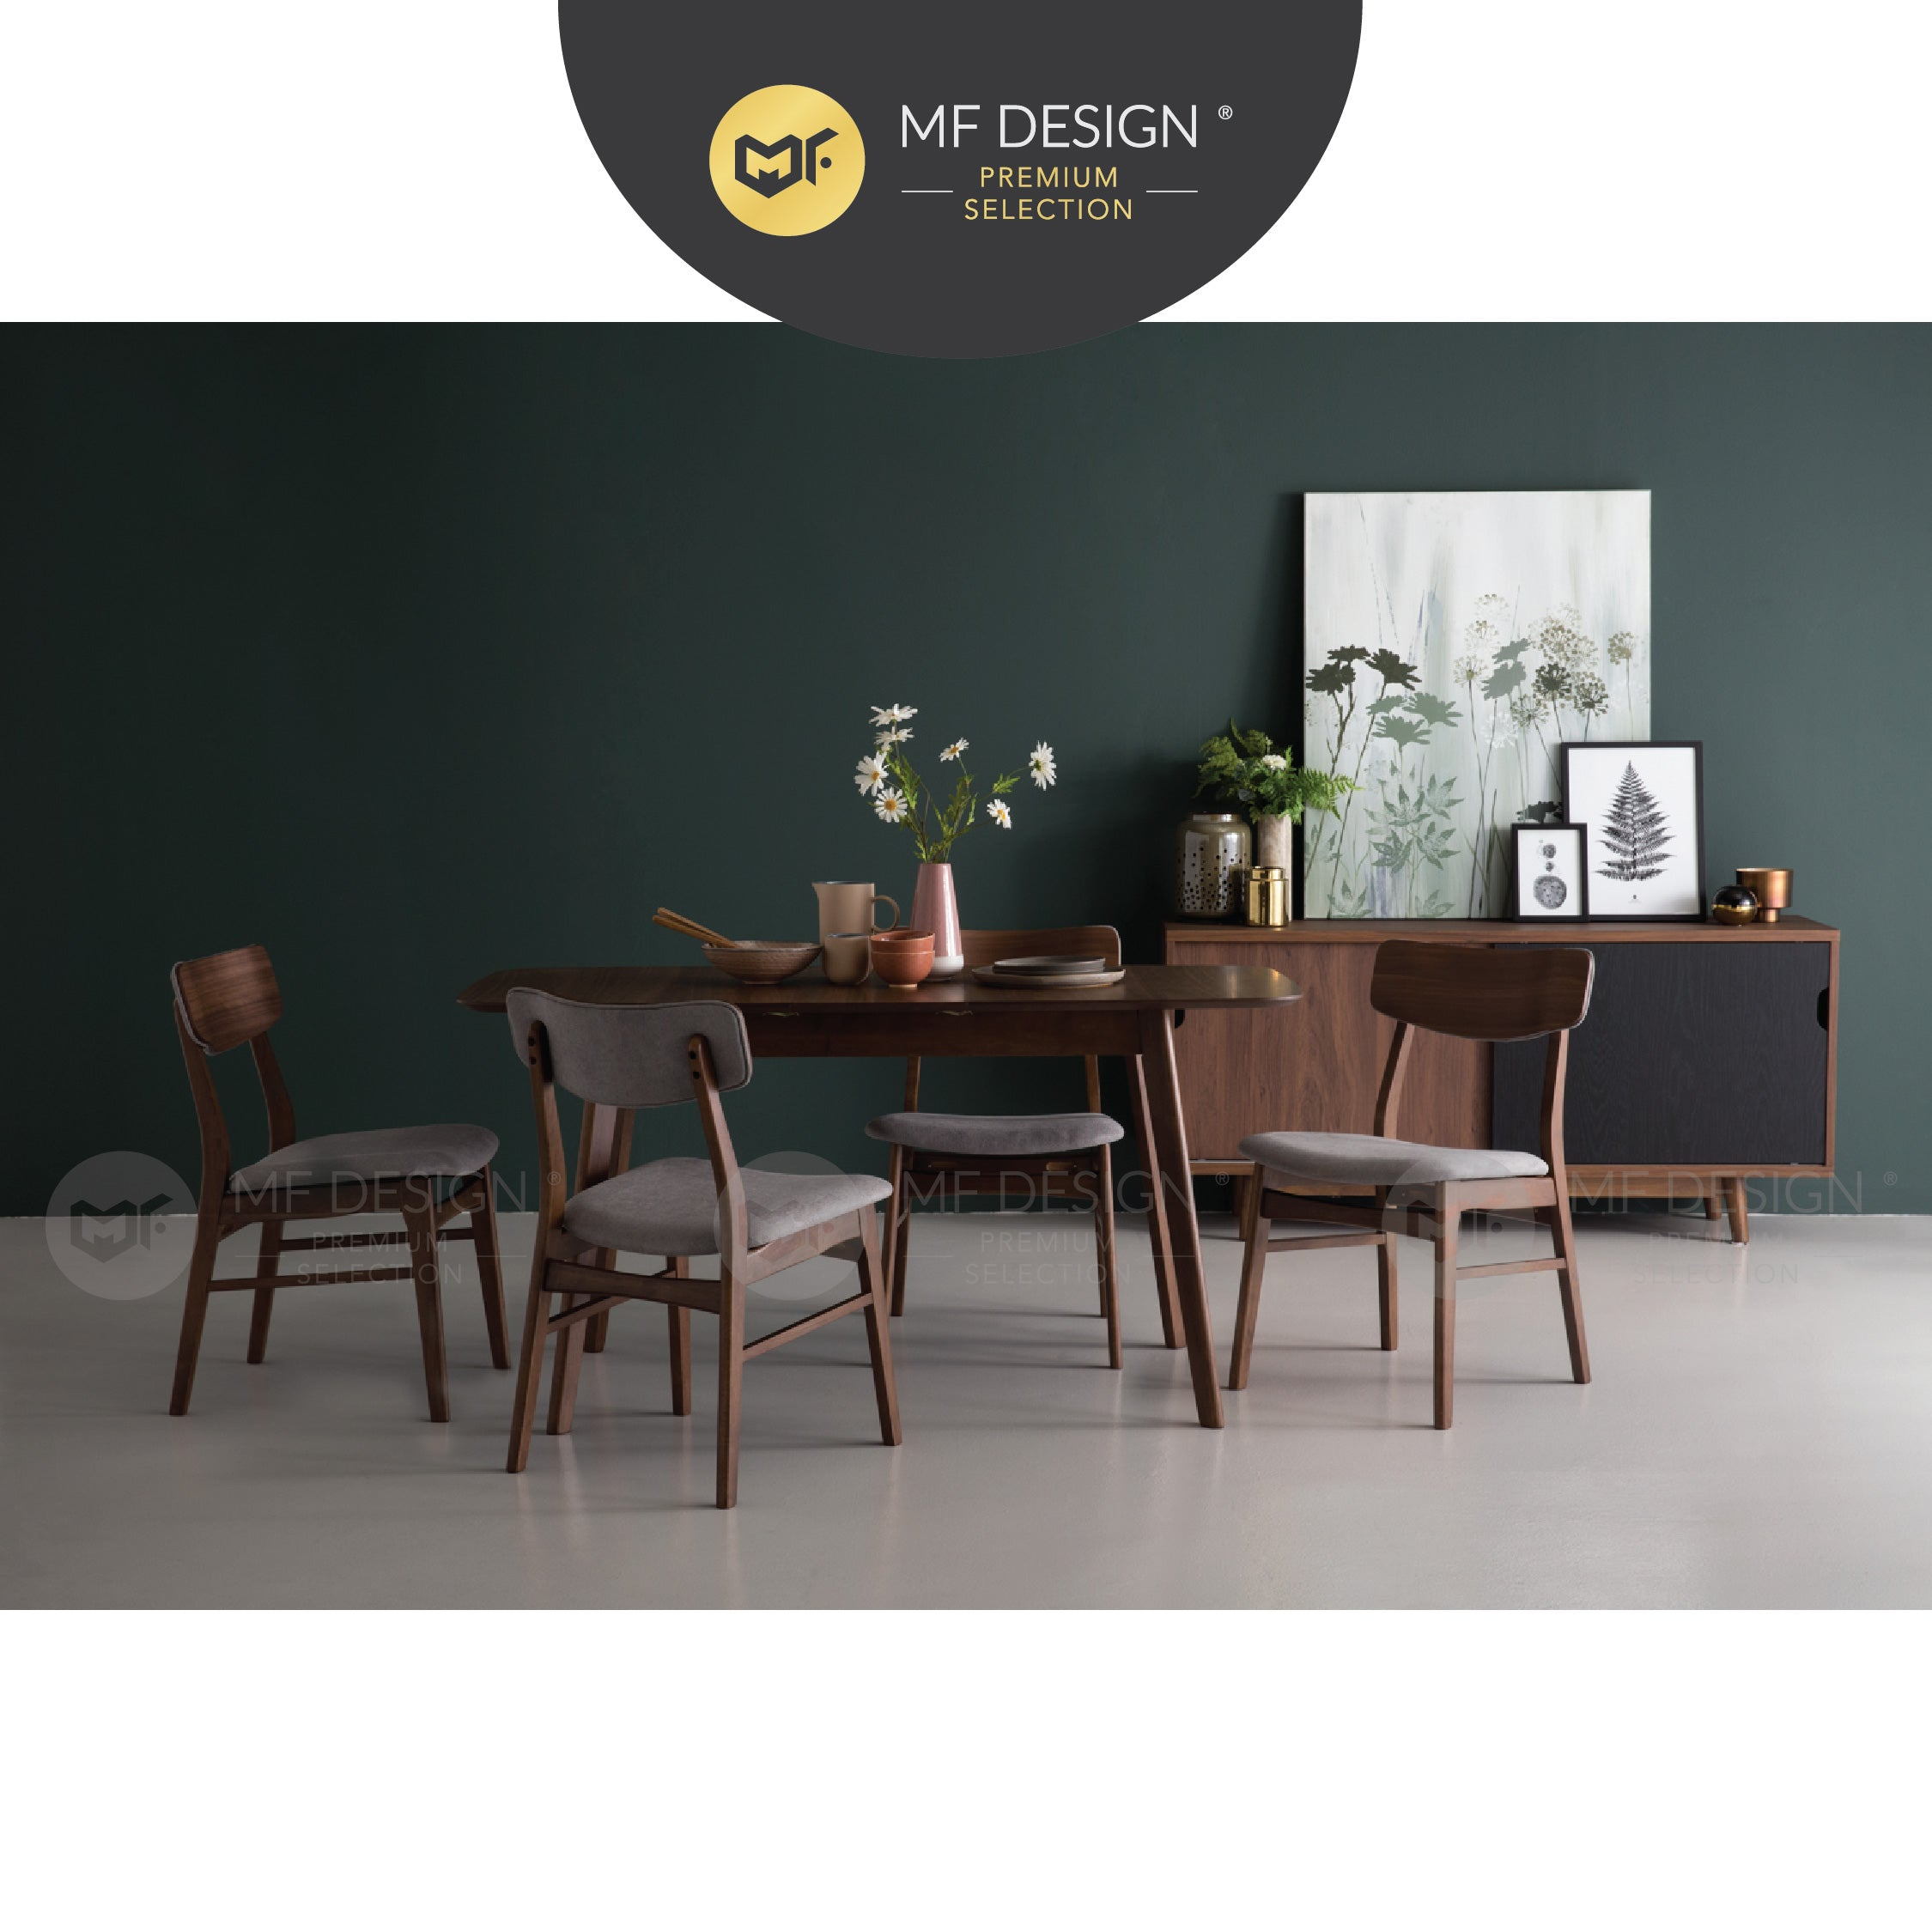 MFD Premium Apple Dining Chair / Wooden Chair / Solid Rubber Wood / Kerusi Makan Kayu Getah / Living Room / Scandinavian